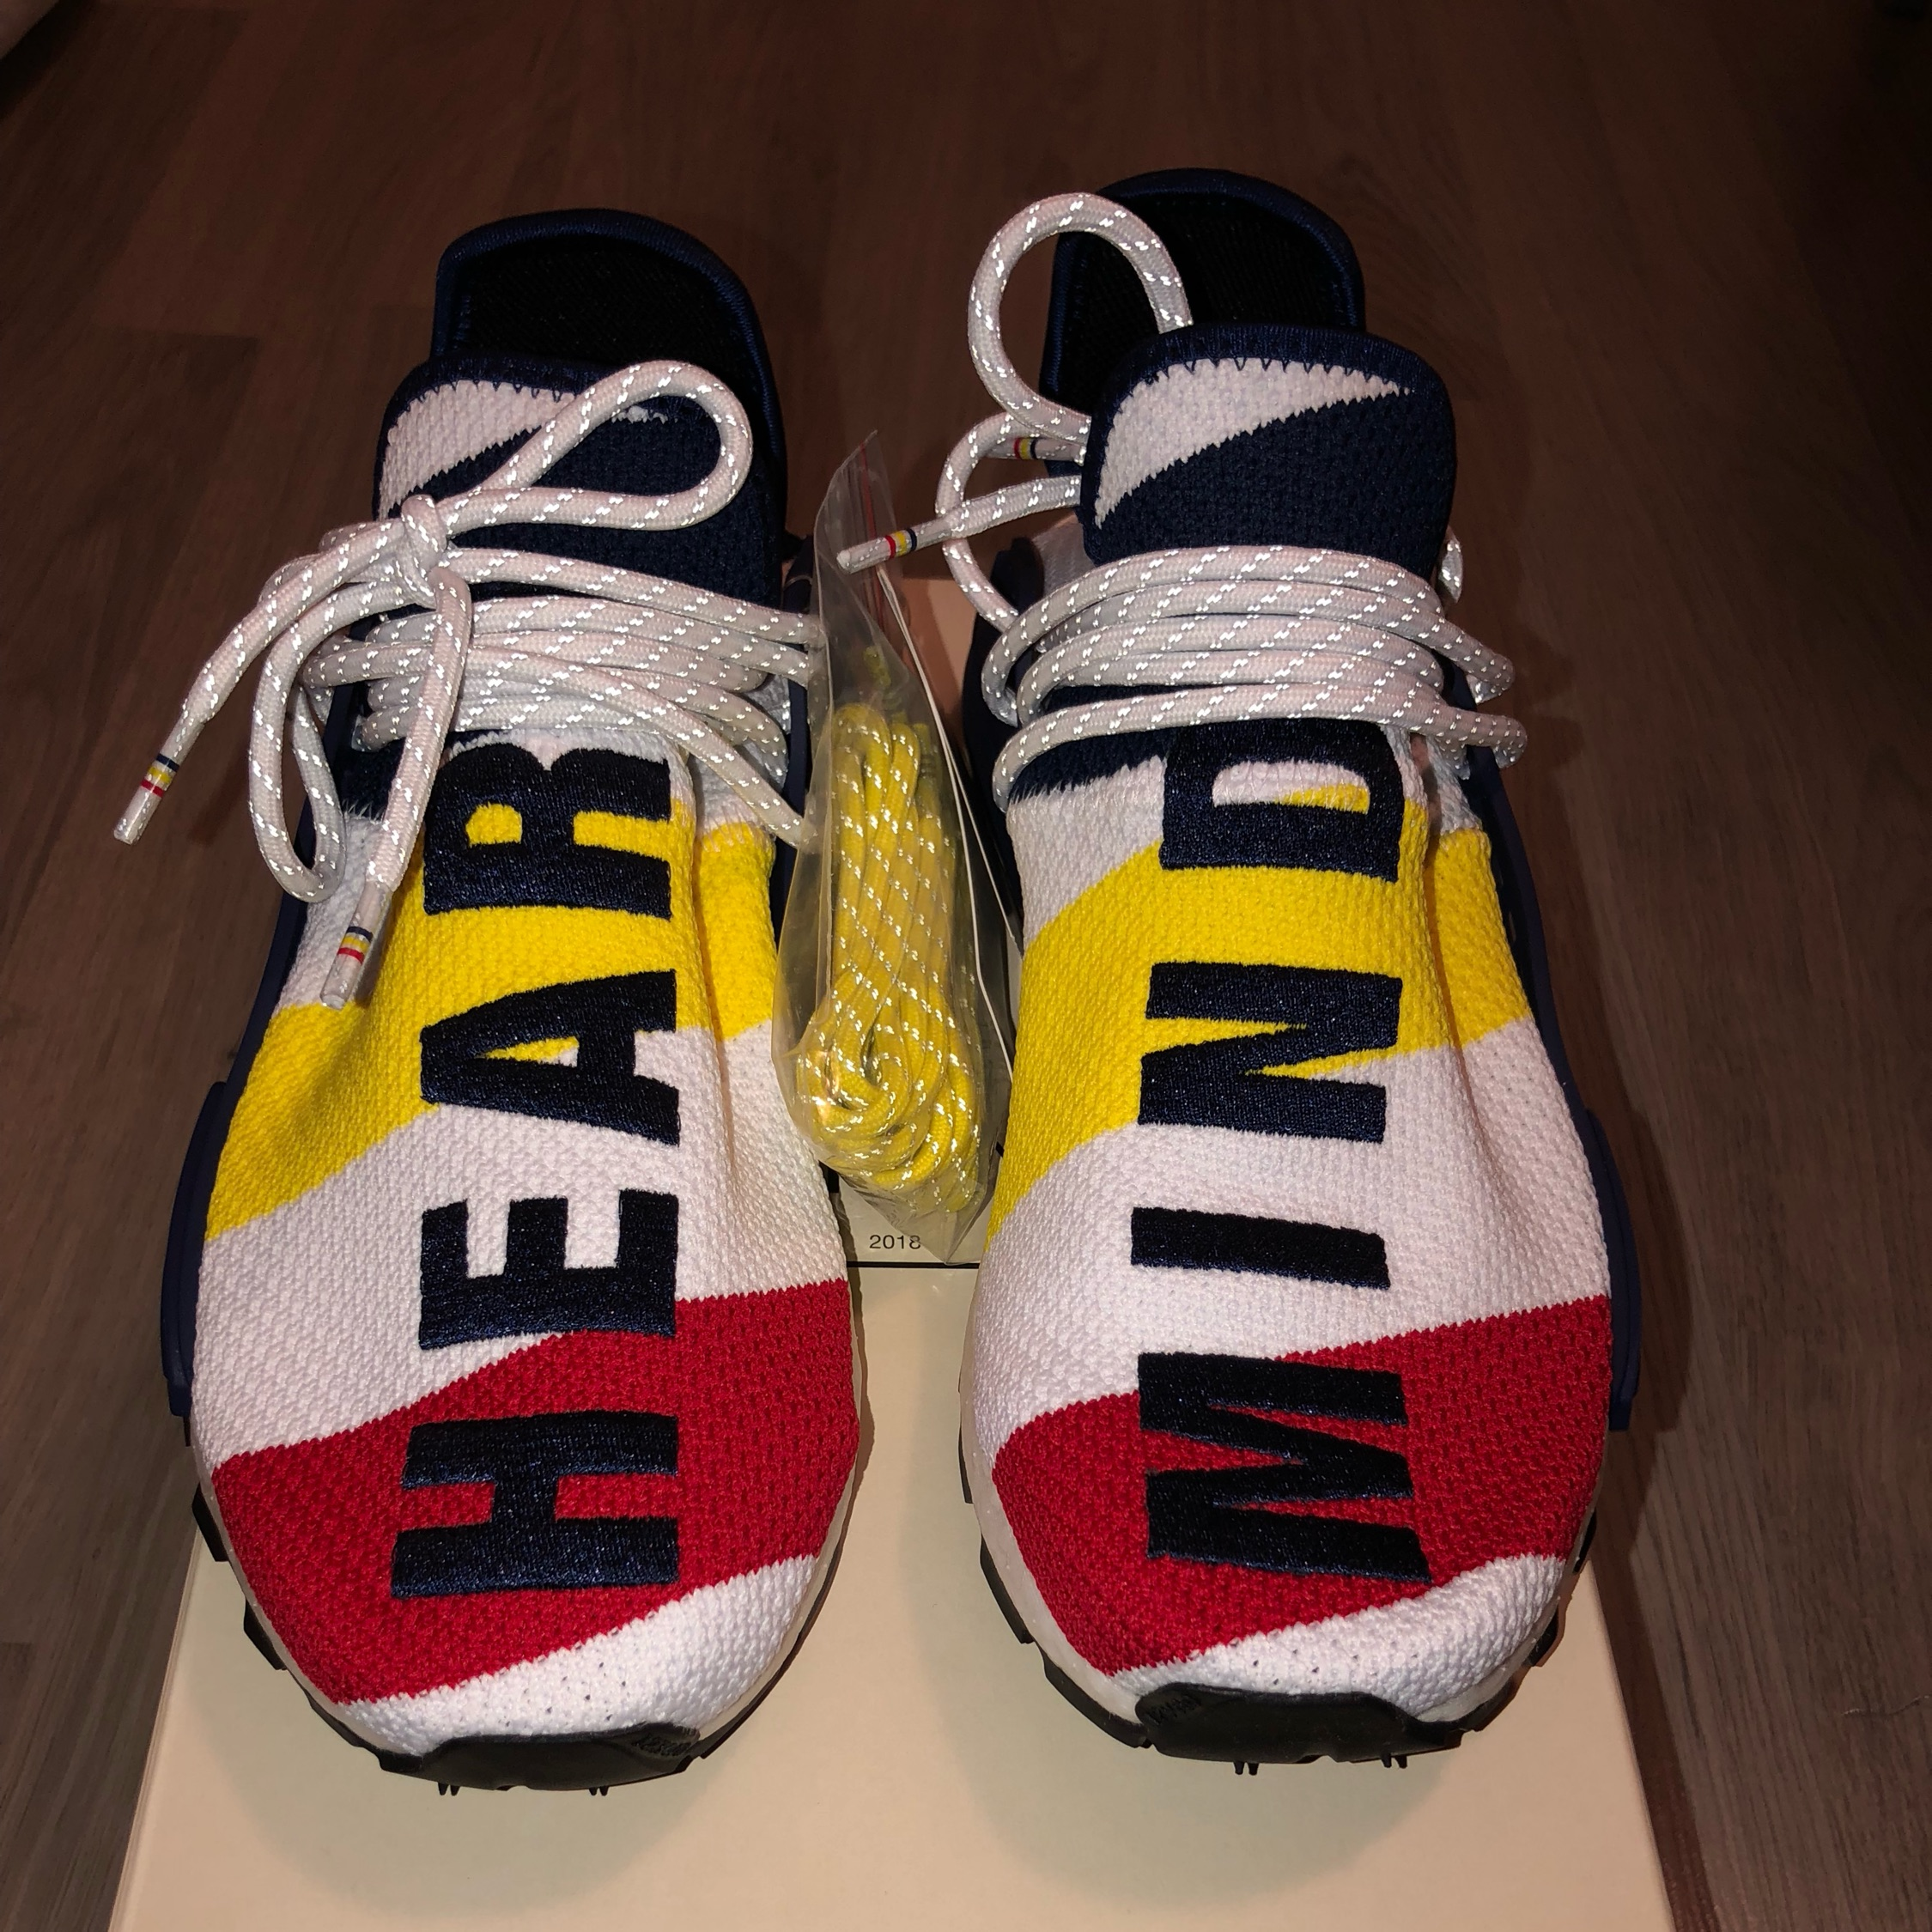 finest selection 816c7 24aad Adidas Bbc Human Race Nmd (Deadstock)